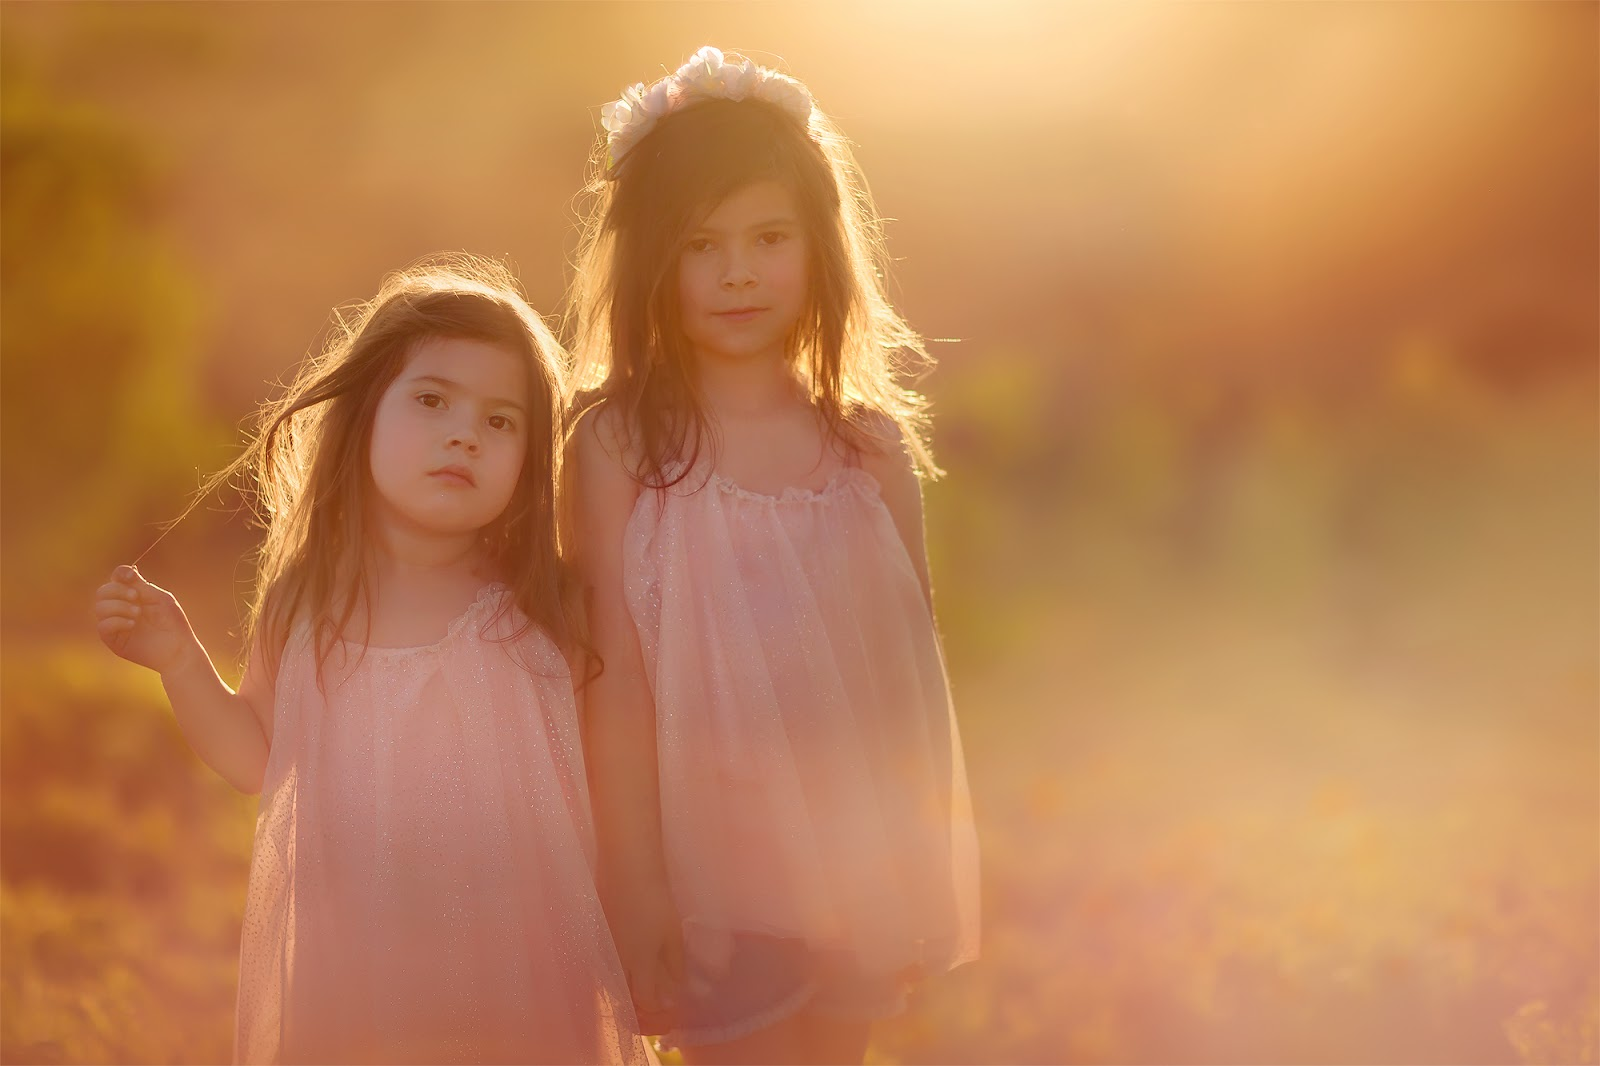 Canon color fine art portrait of two little sisters posing in front of a camera during sunset by Willie Kers